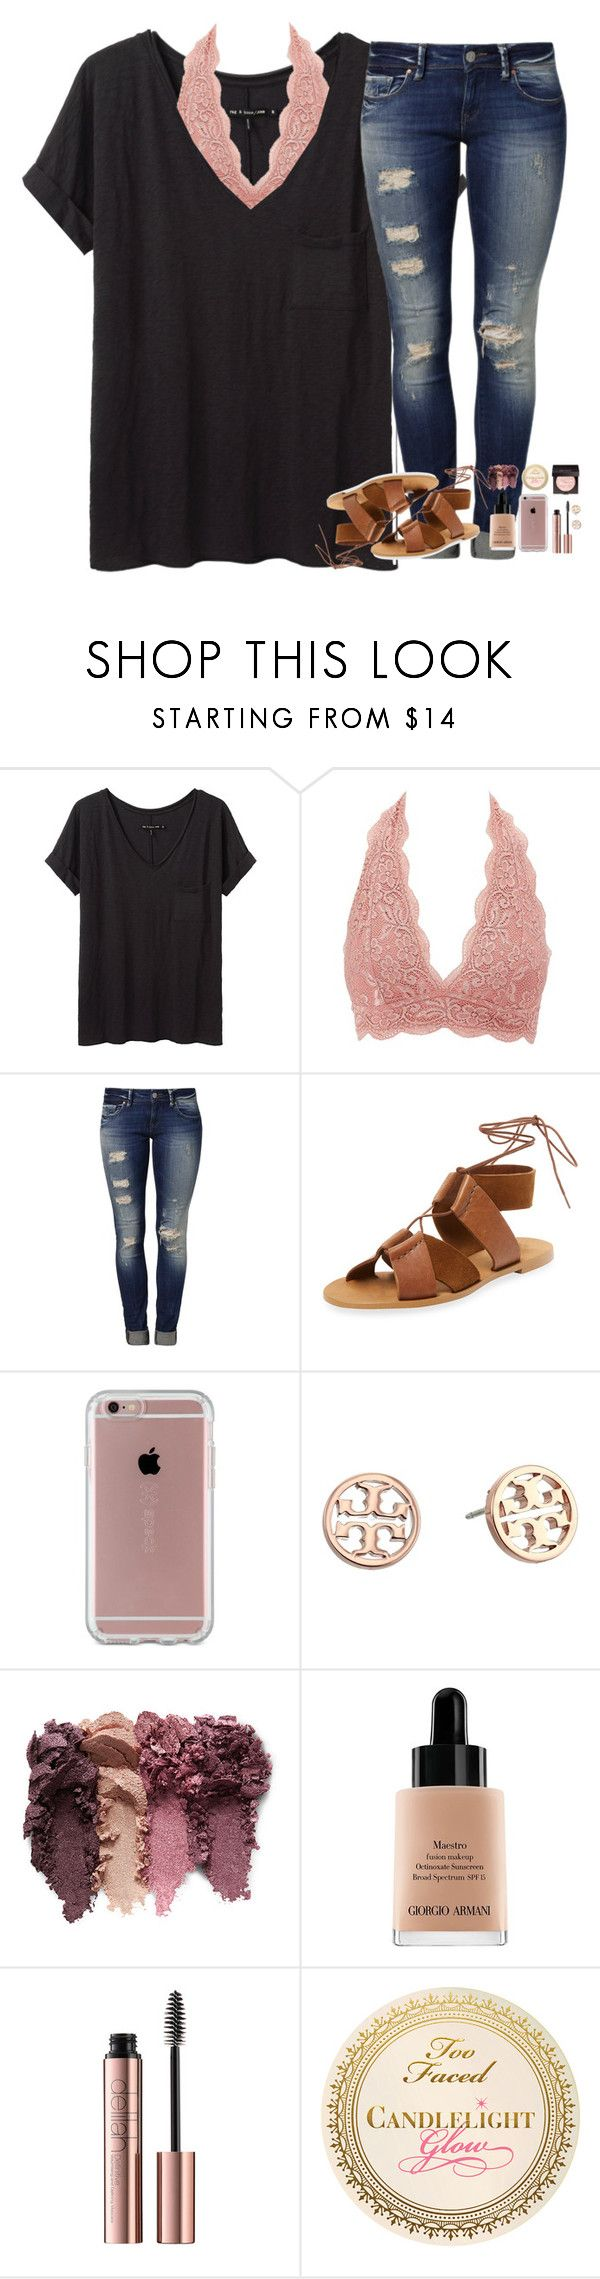 """""""highlight be poppin ✨"""" by mehanahan ❤ liked on Polyvore featuring rag & bone/JEAN, Charlotte Russe, Mavi, Firth, Speck, Tory Burch, Giorgio Armani and Laura Mercier"""